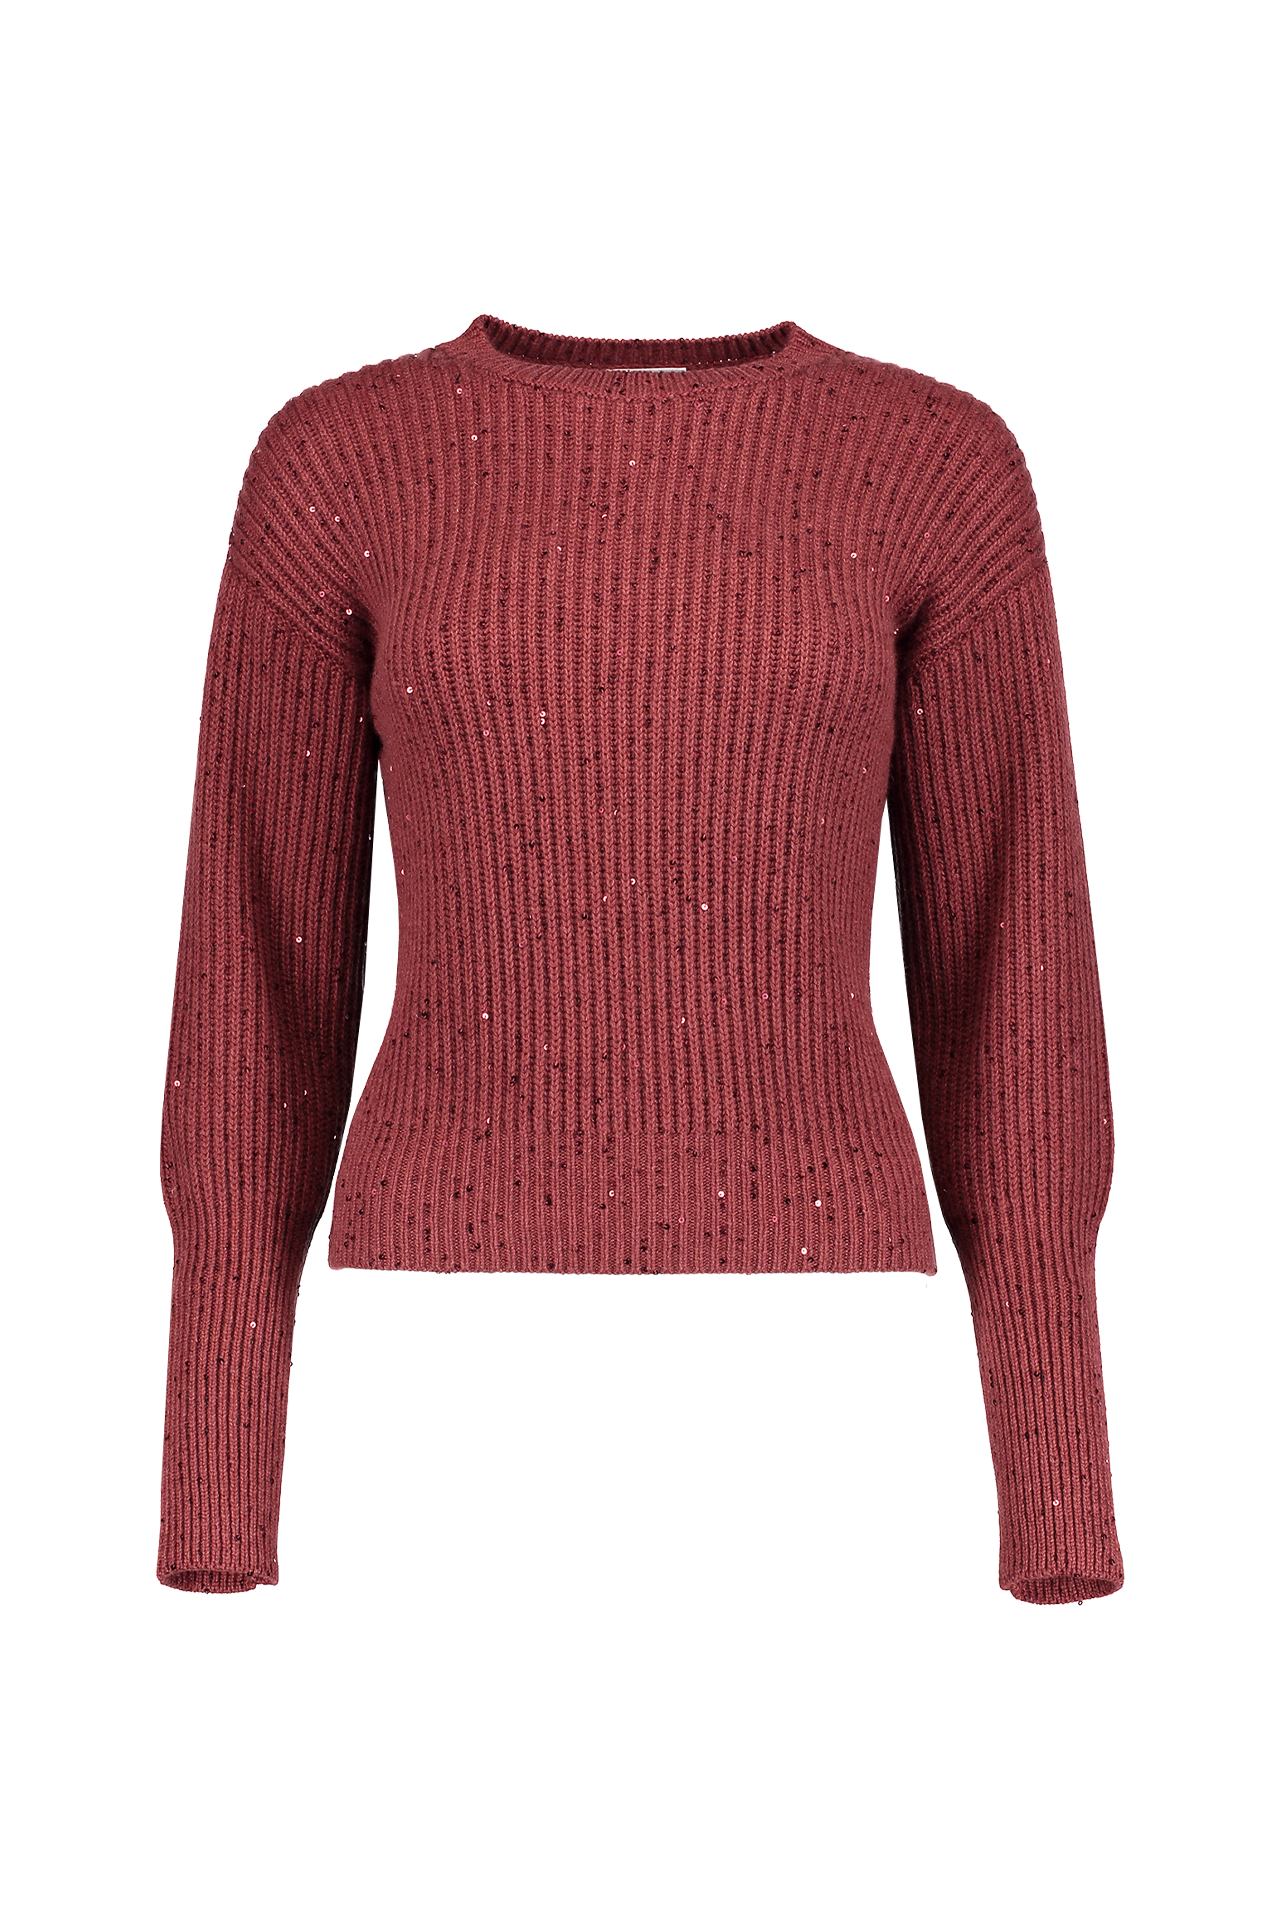 Cash Silk Rib Cropped Silver Sweater In Raisin